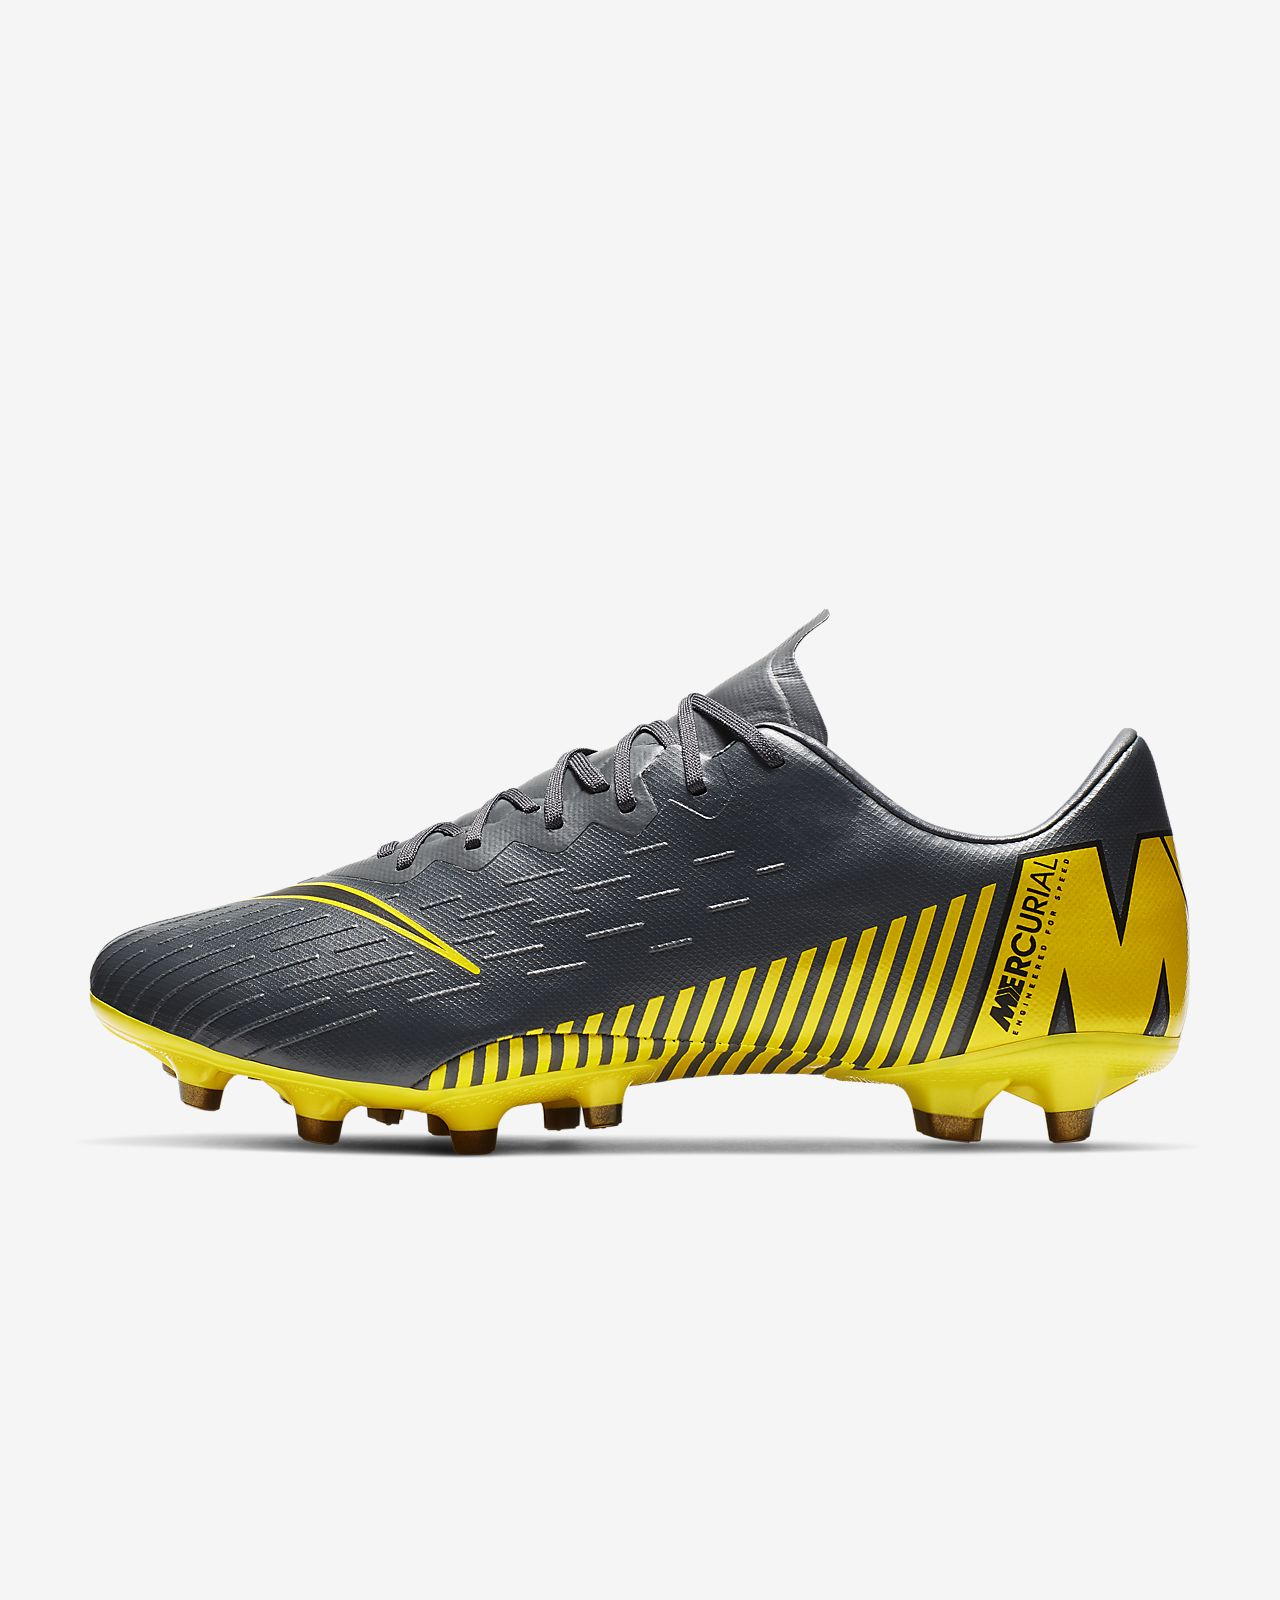 87ddbd86685 Nike Mercurial Vapor XII Pro AG-PRO Artificial-Grass Football Boot ...